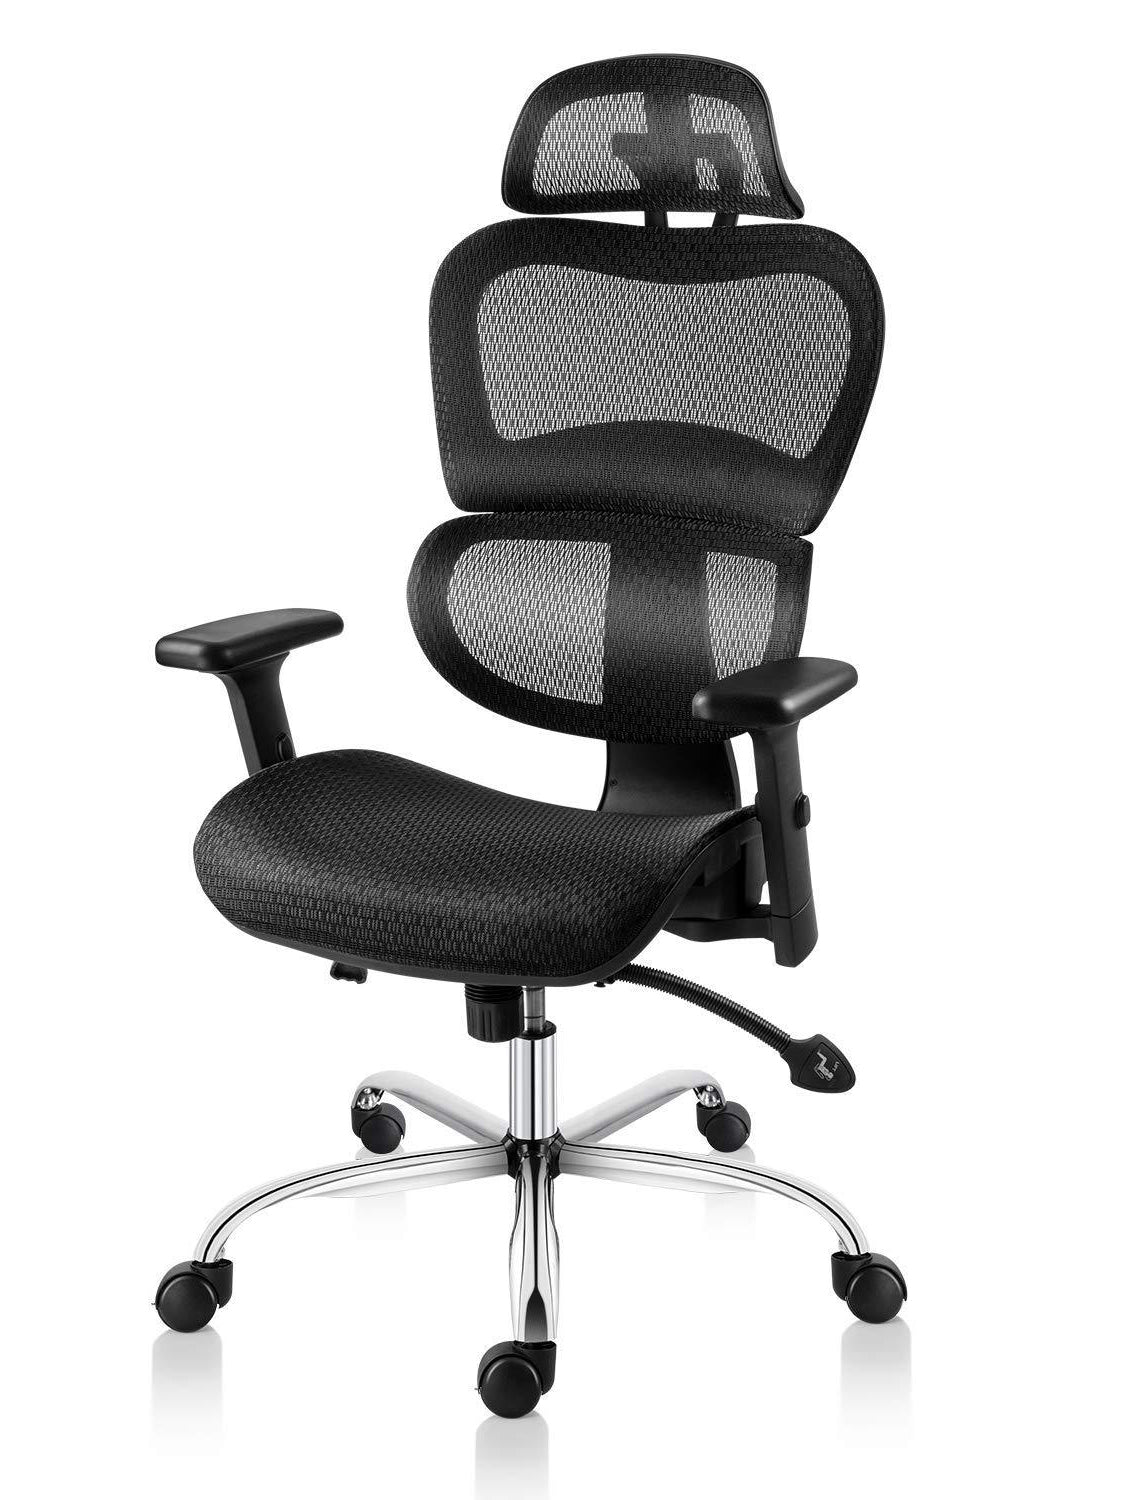 SmugChair Ergonomic High Back Mesh Office Desk Chair  Smugdesk